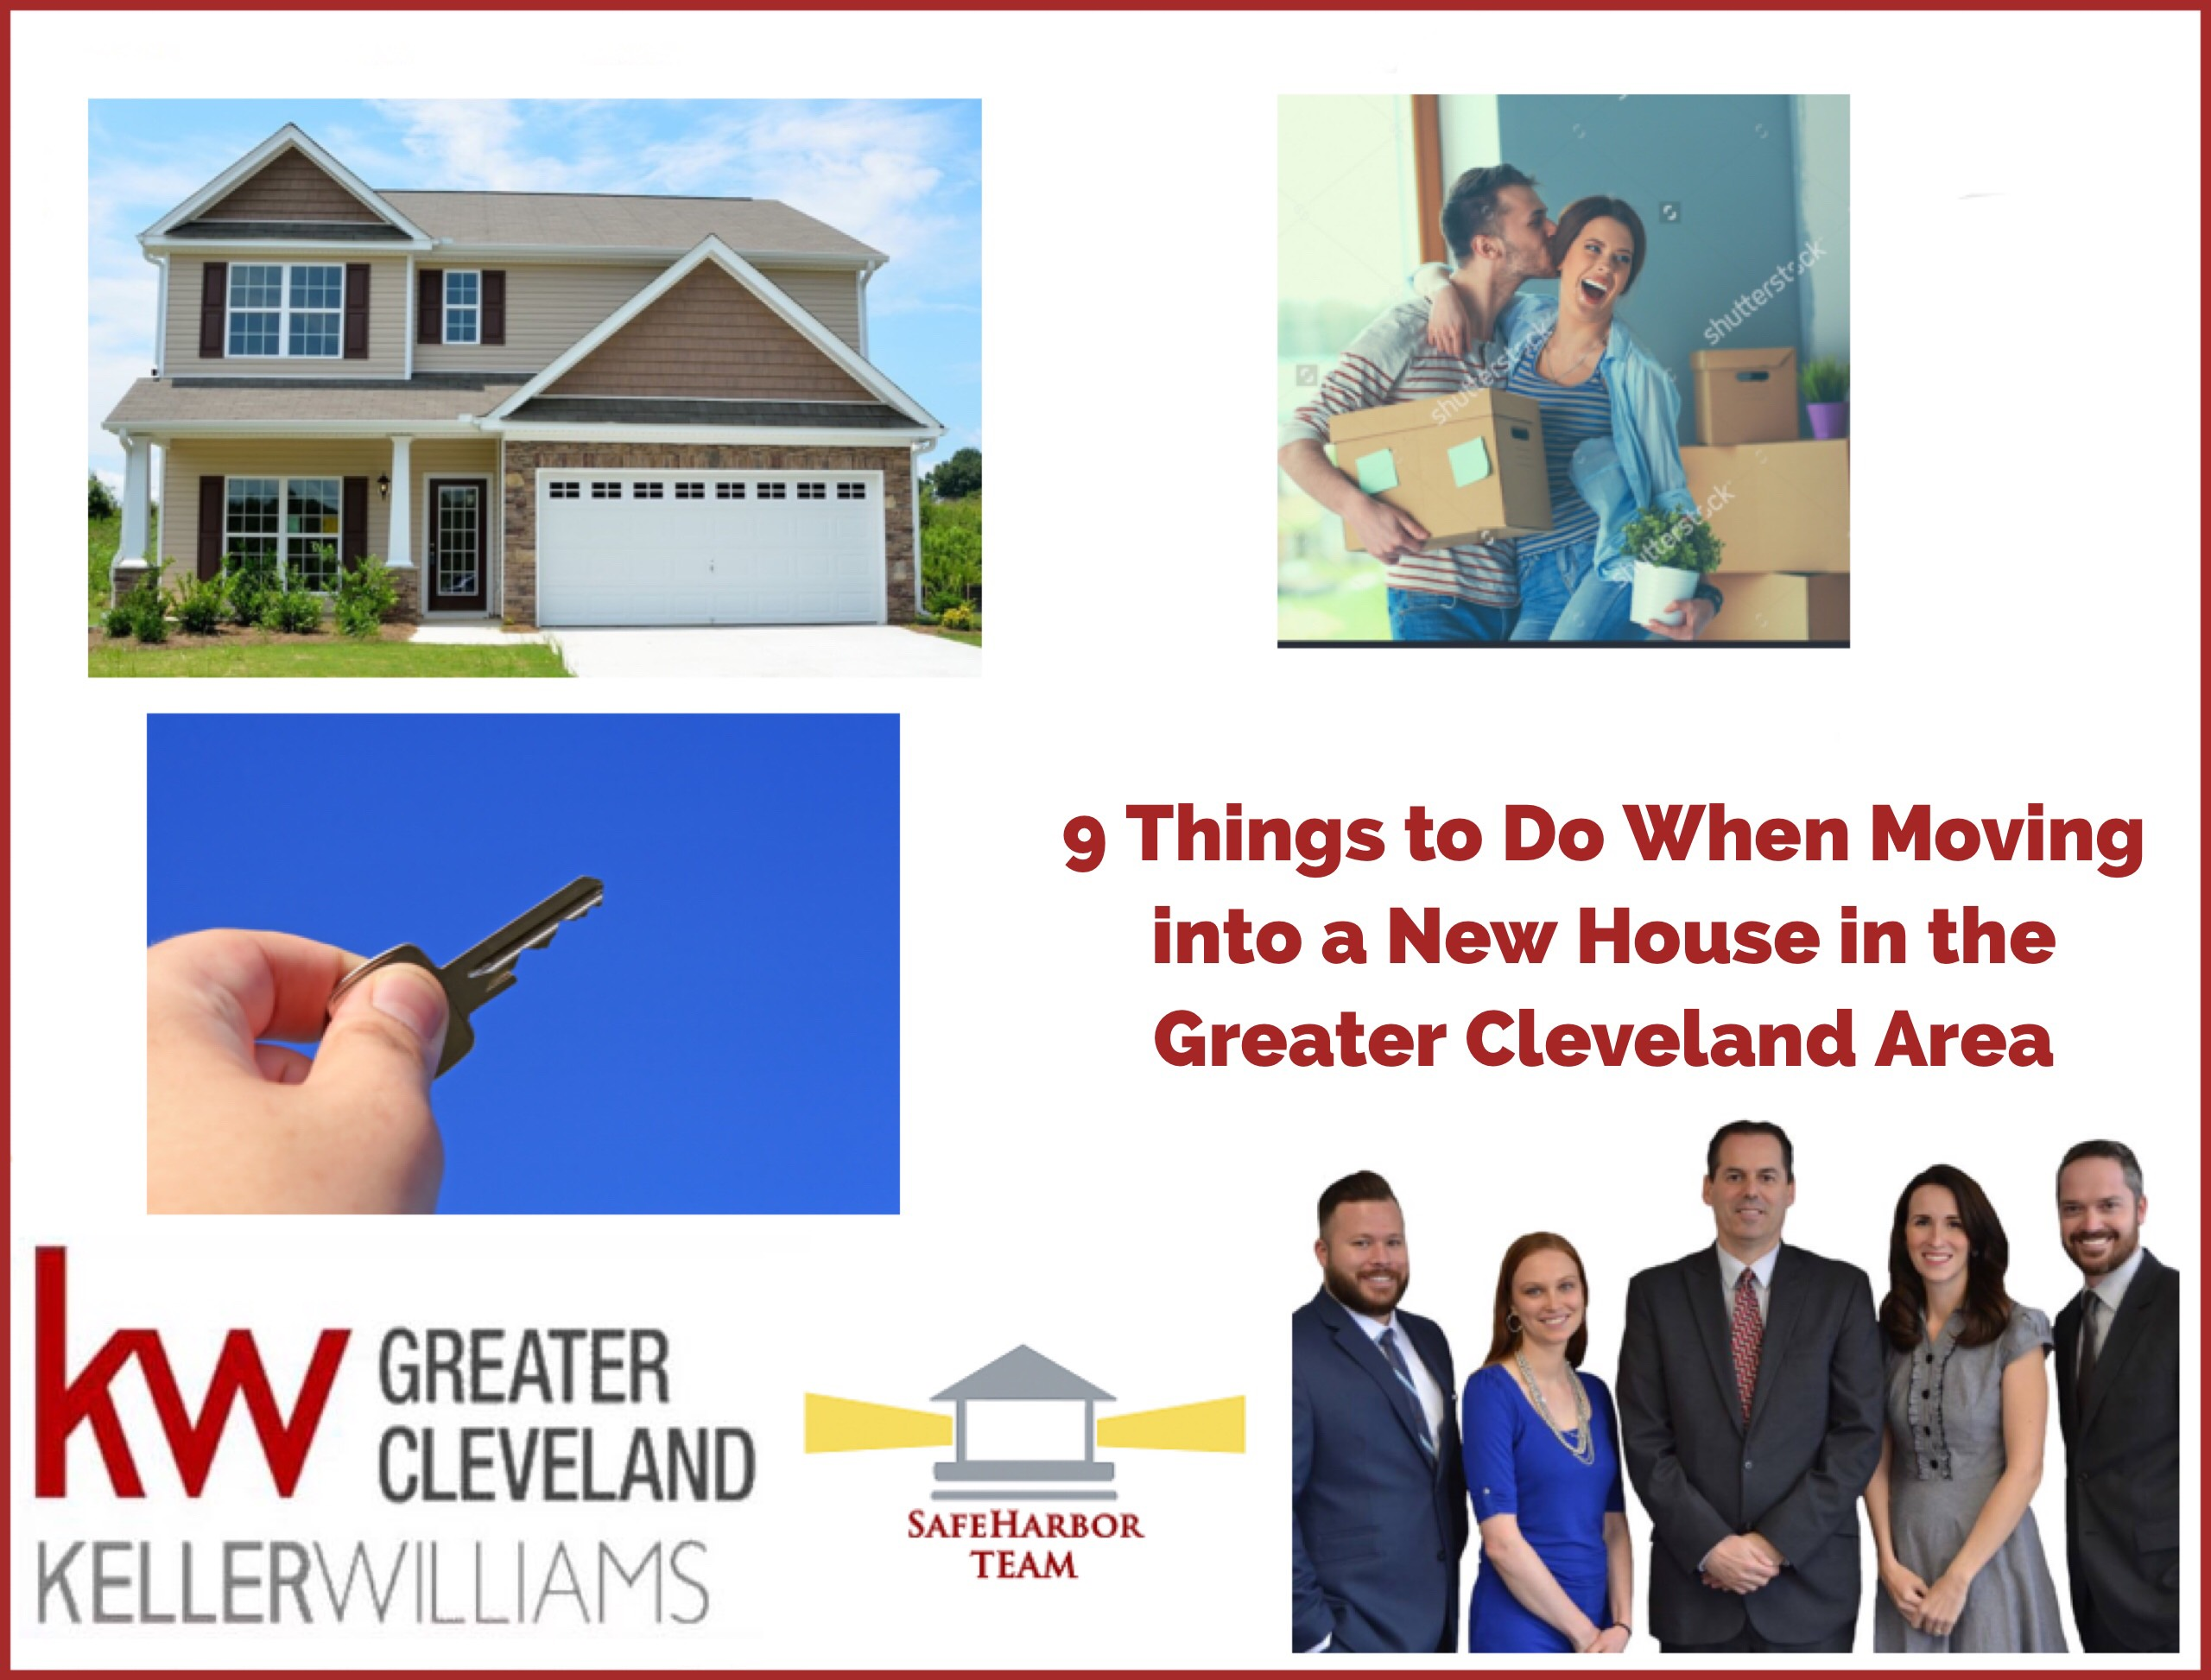 9 Things to Do When Moving into a New House in the Greater Cleveland Area